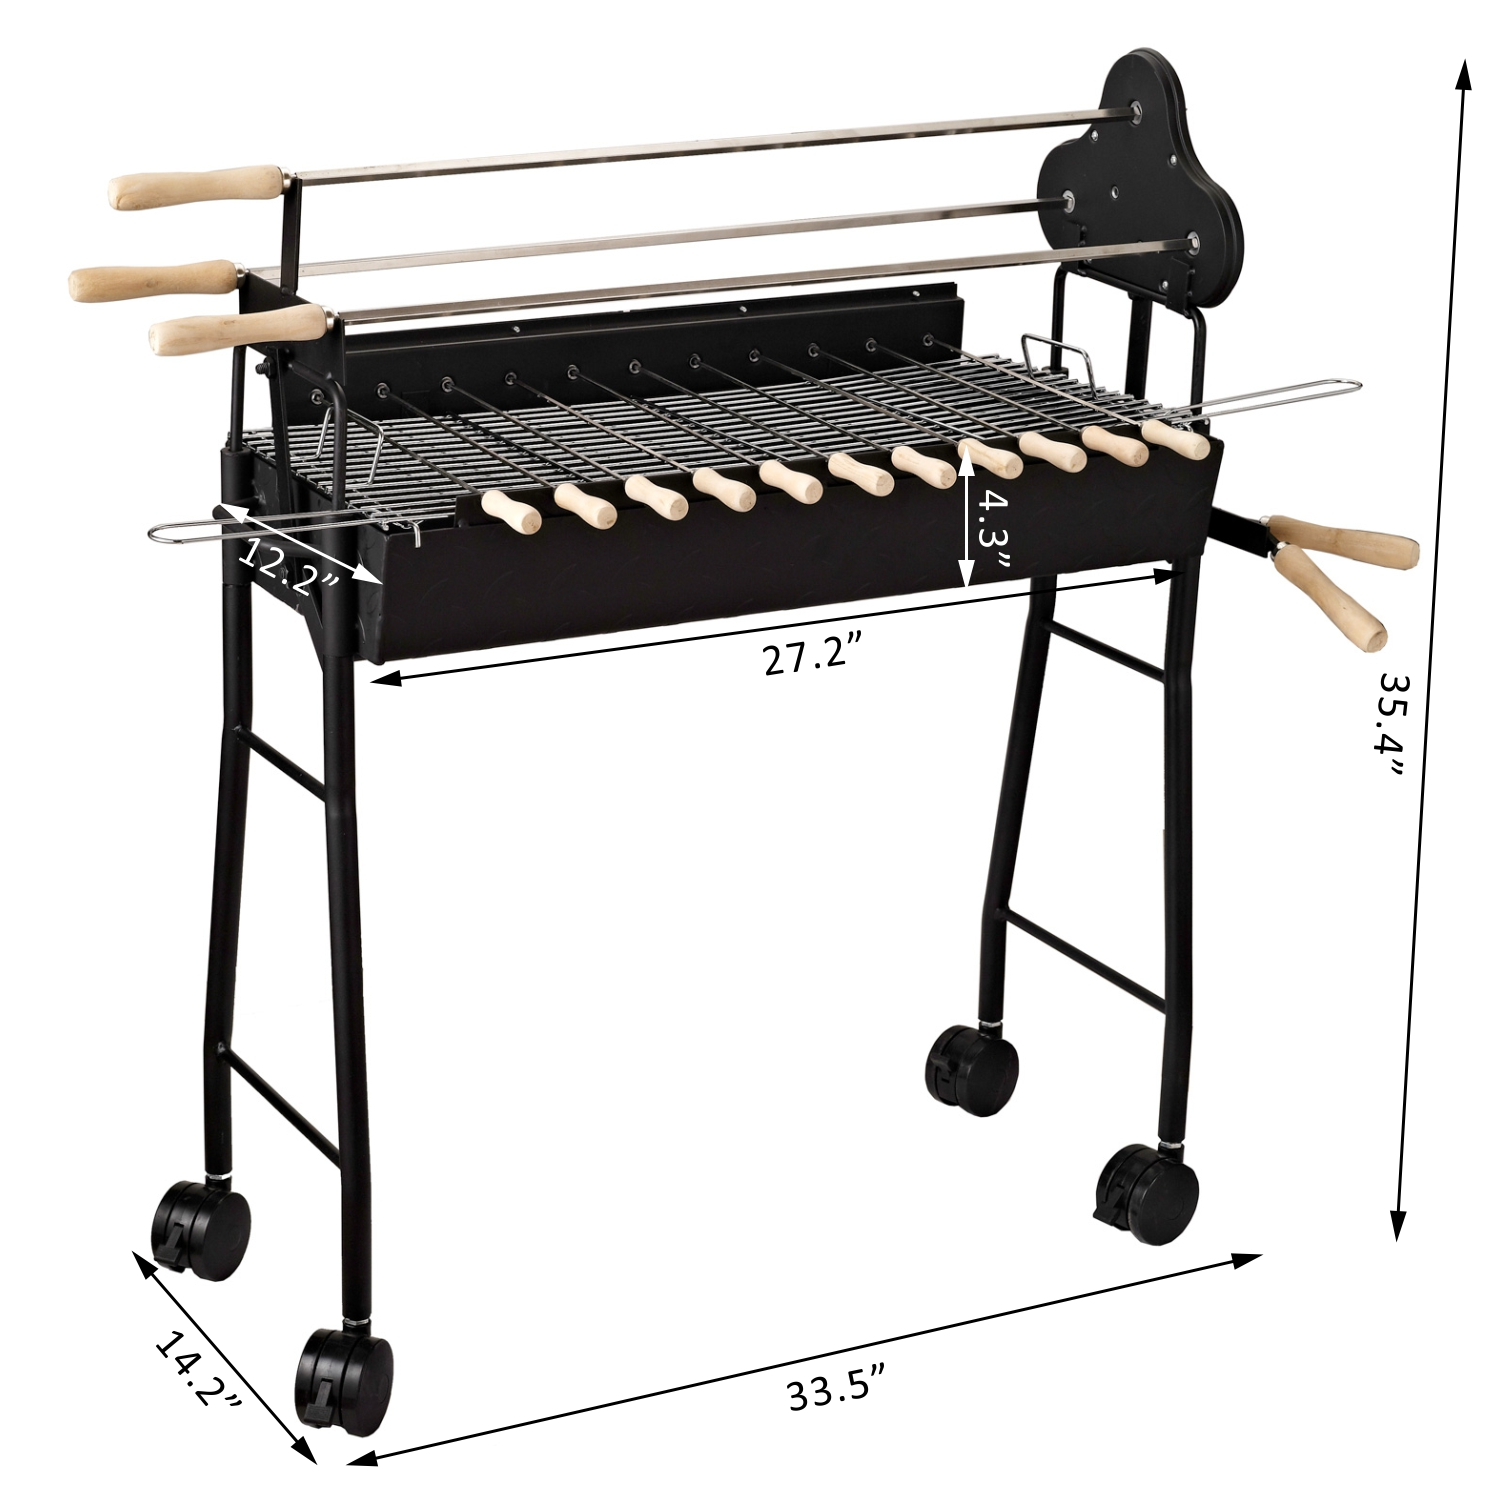 on bbq series steel grill wrotisserie rotisserie base natural aog in stainless with product pedestal gas grills t